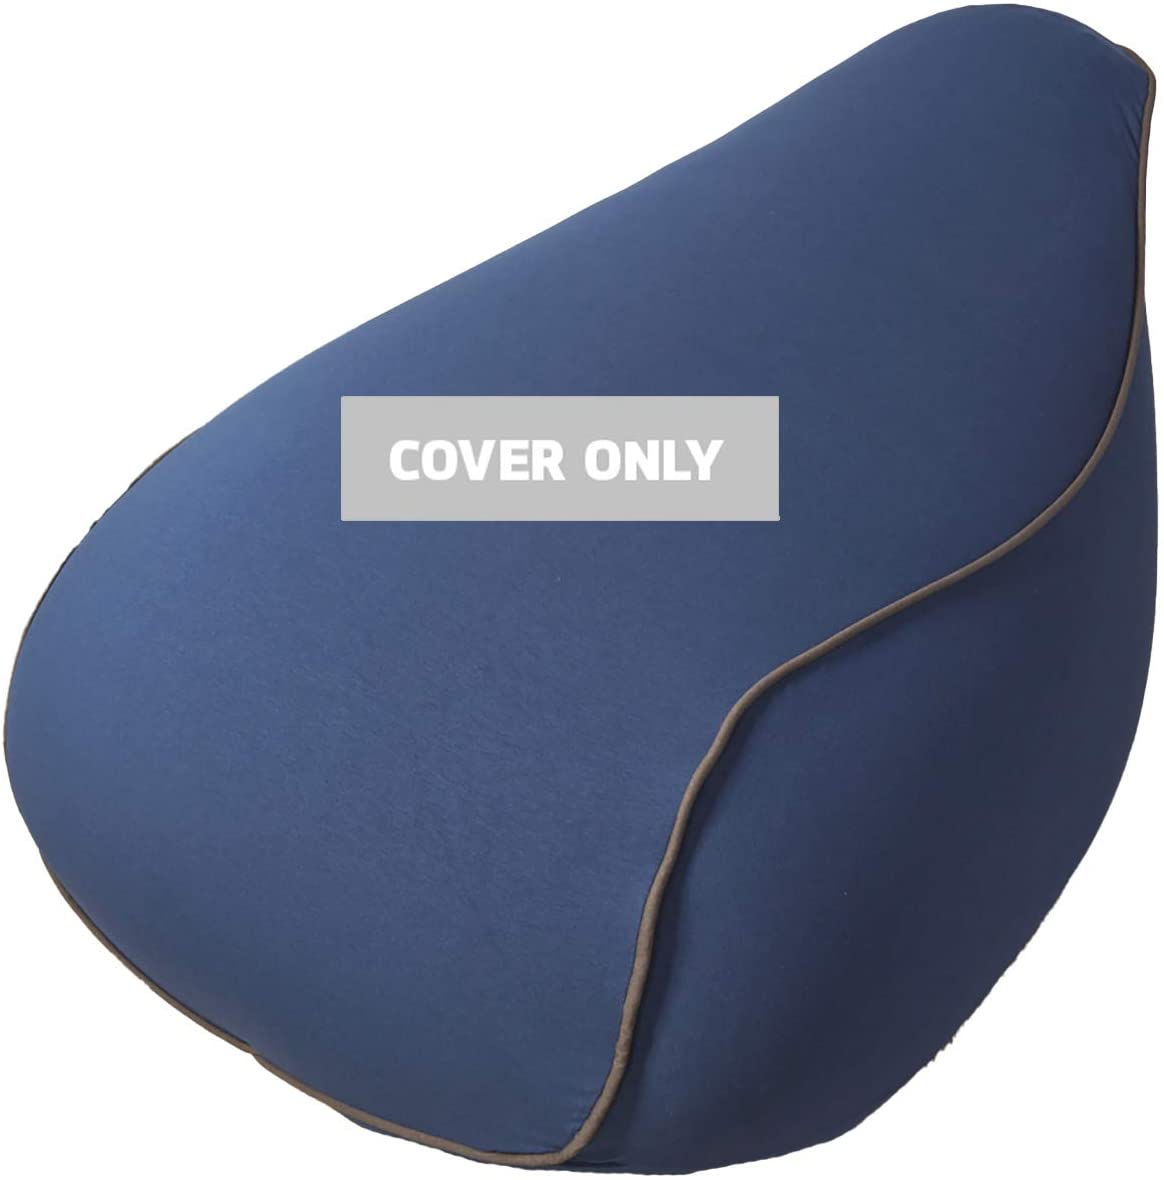 Yogibo Lounger Bean Bag Replacement Cover, Removable, Washable, Blue